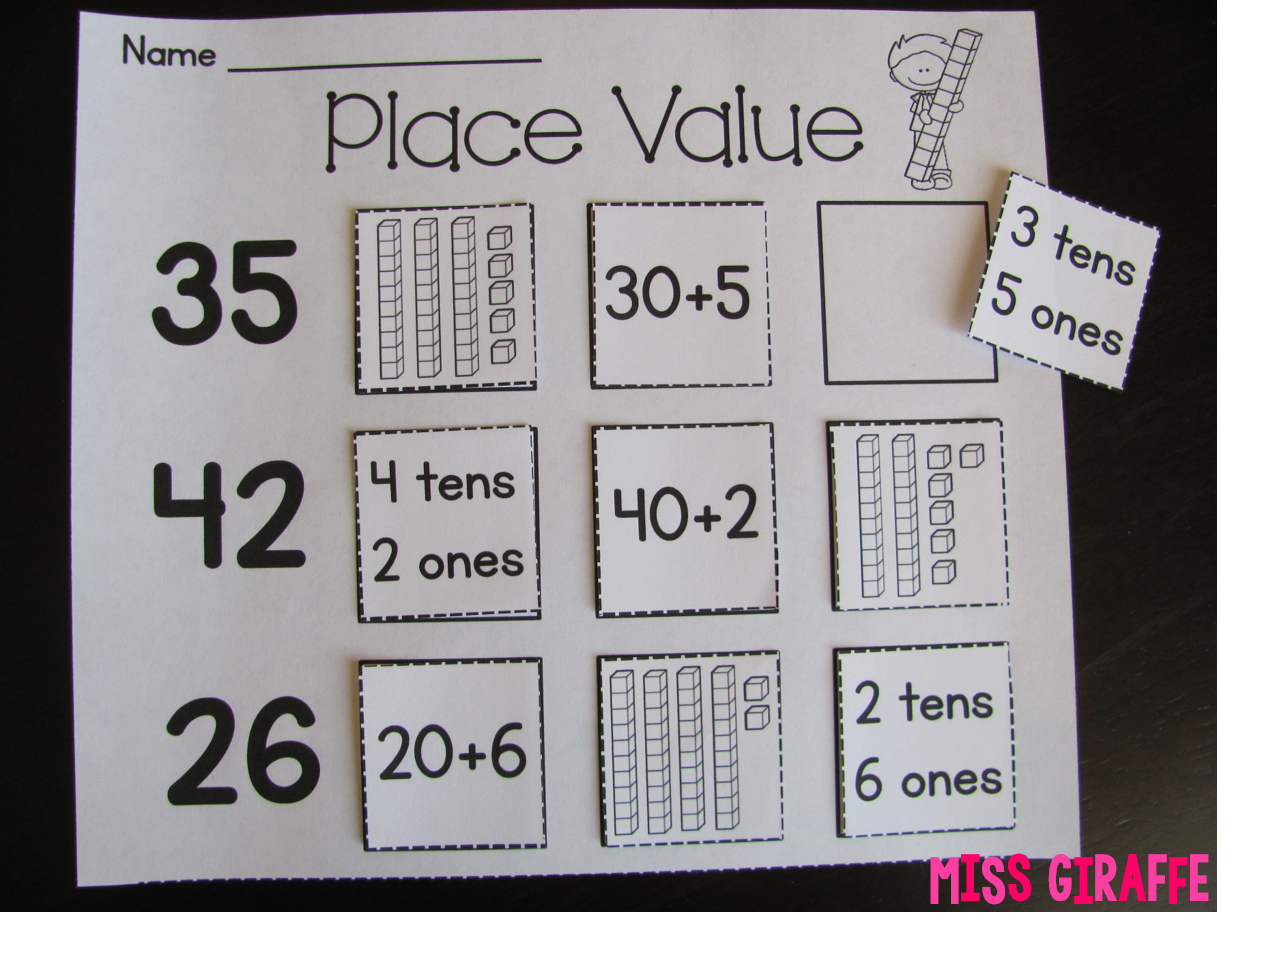 Miss Giraffeu0026#39;s Class: Place Value in First Grade